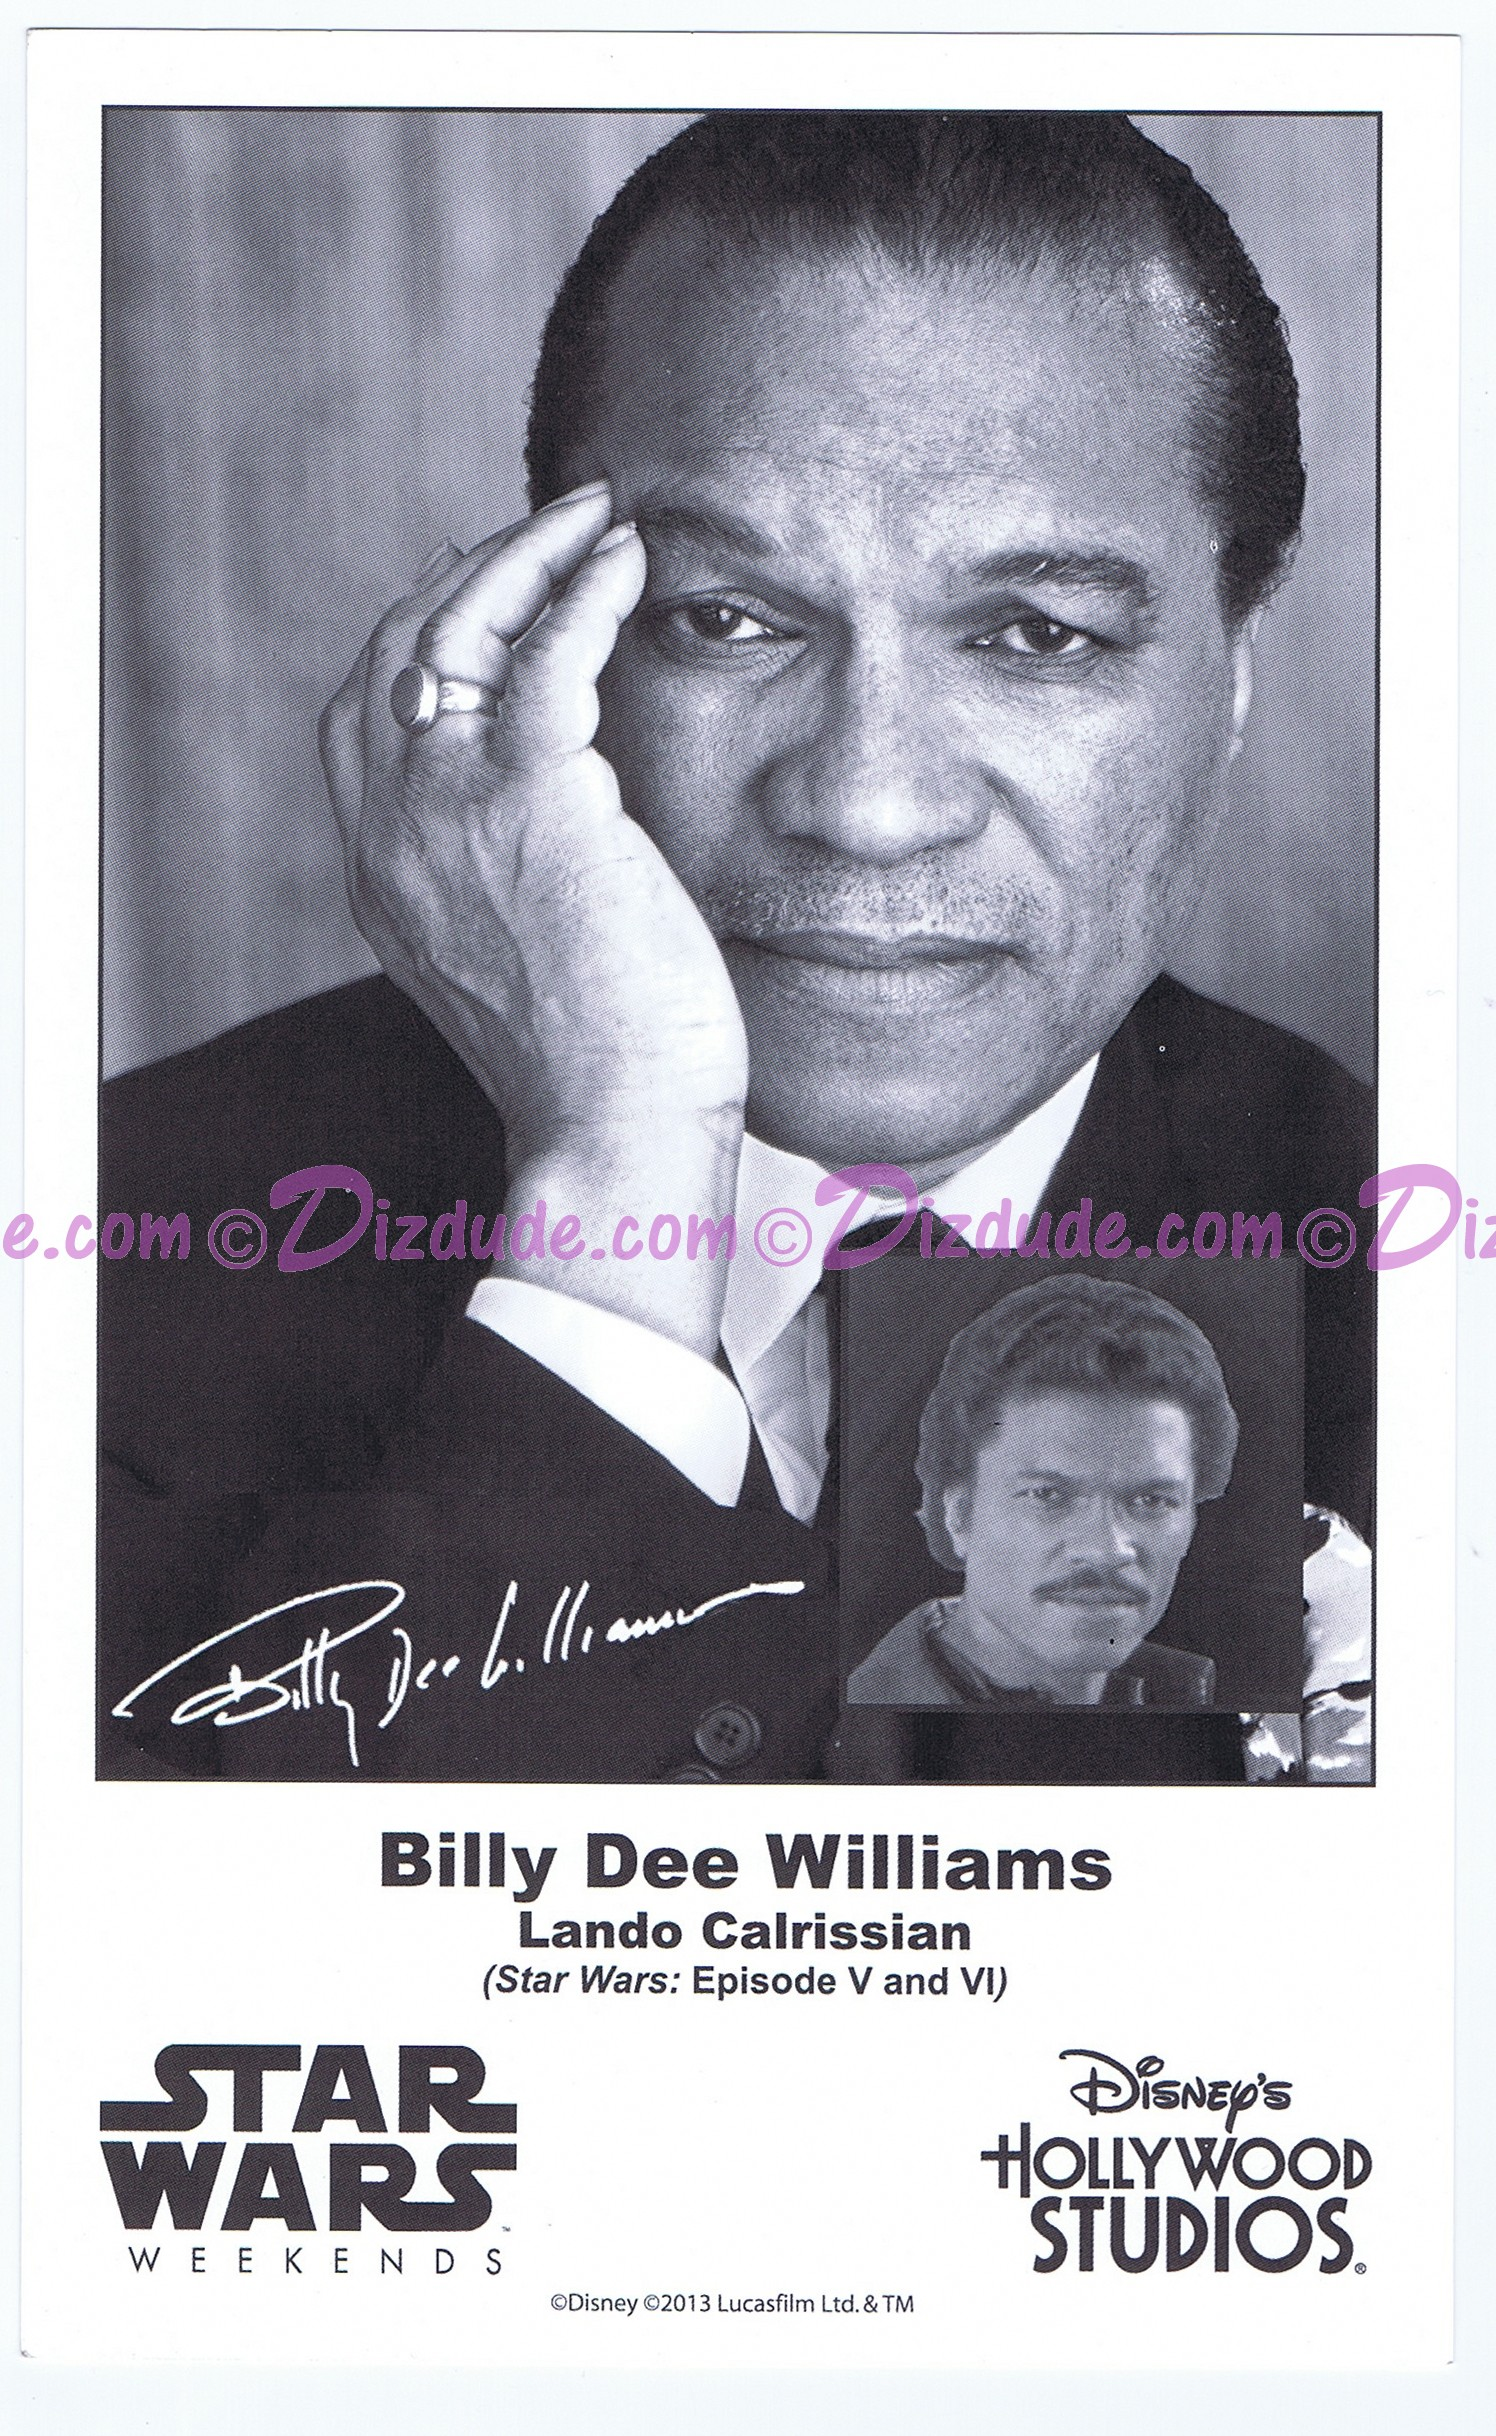 Billy Dee Williams Who Played Lando Calrissian Presigned Official Star Wars Weekends 2013 Celebrity Collector Photo © Dizdude.com